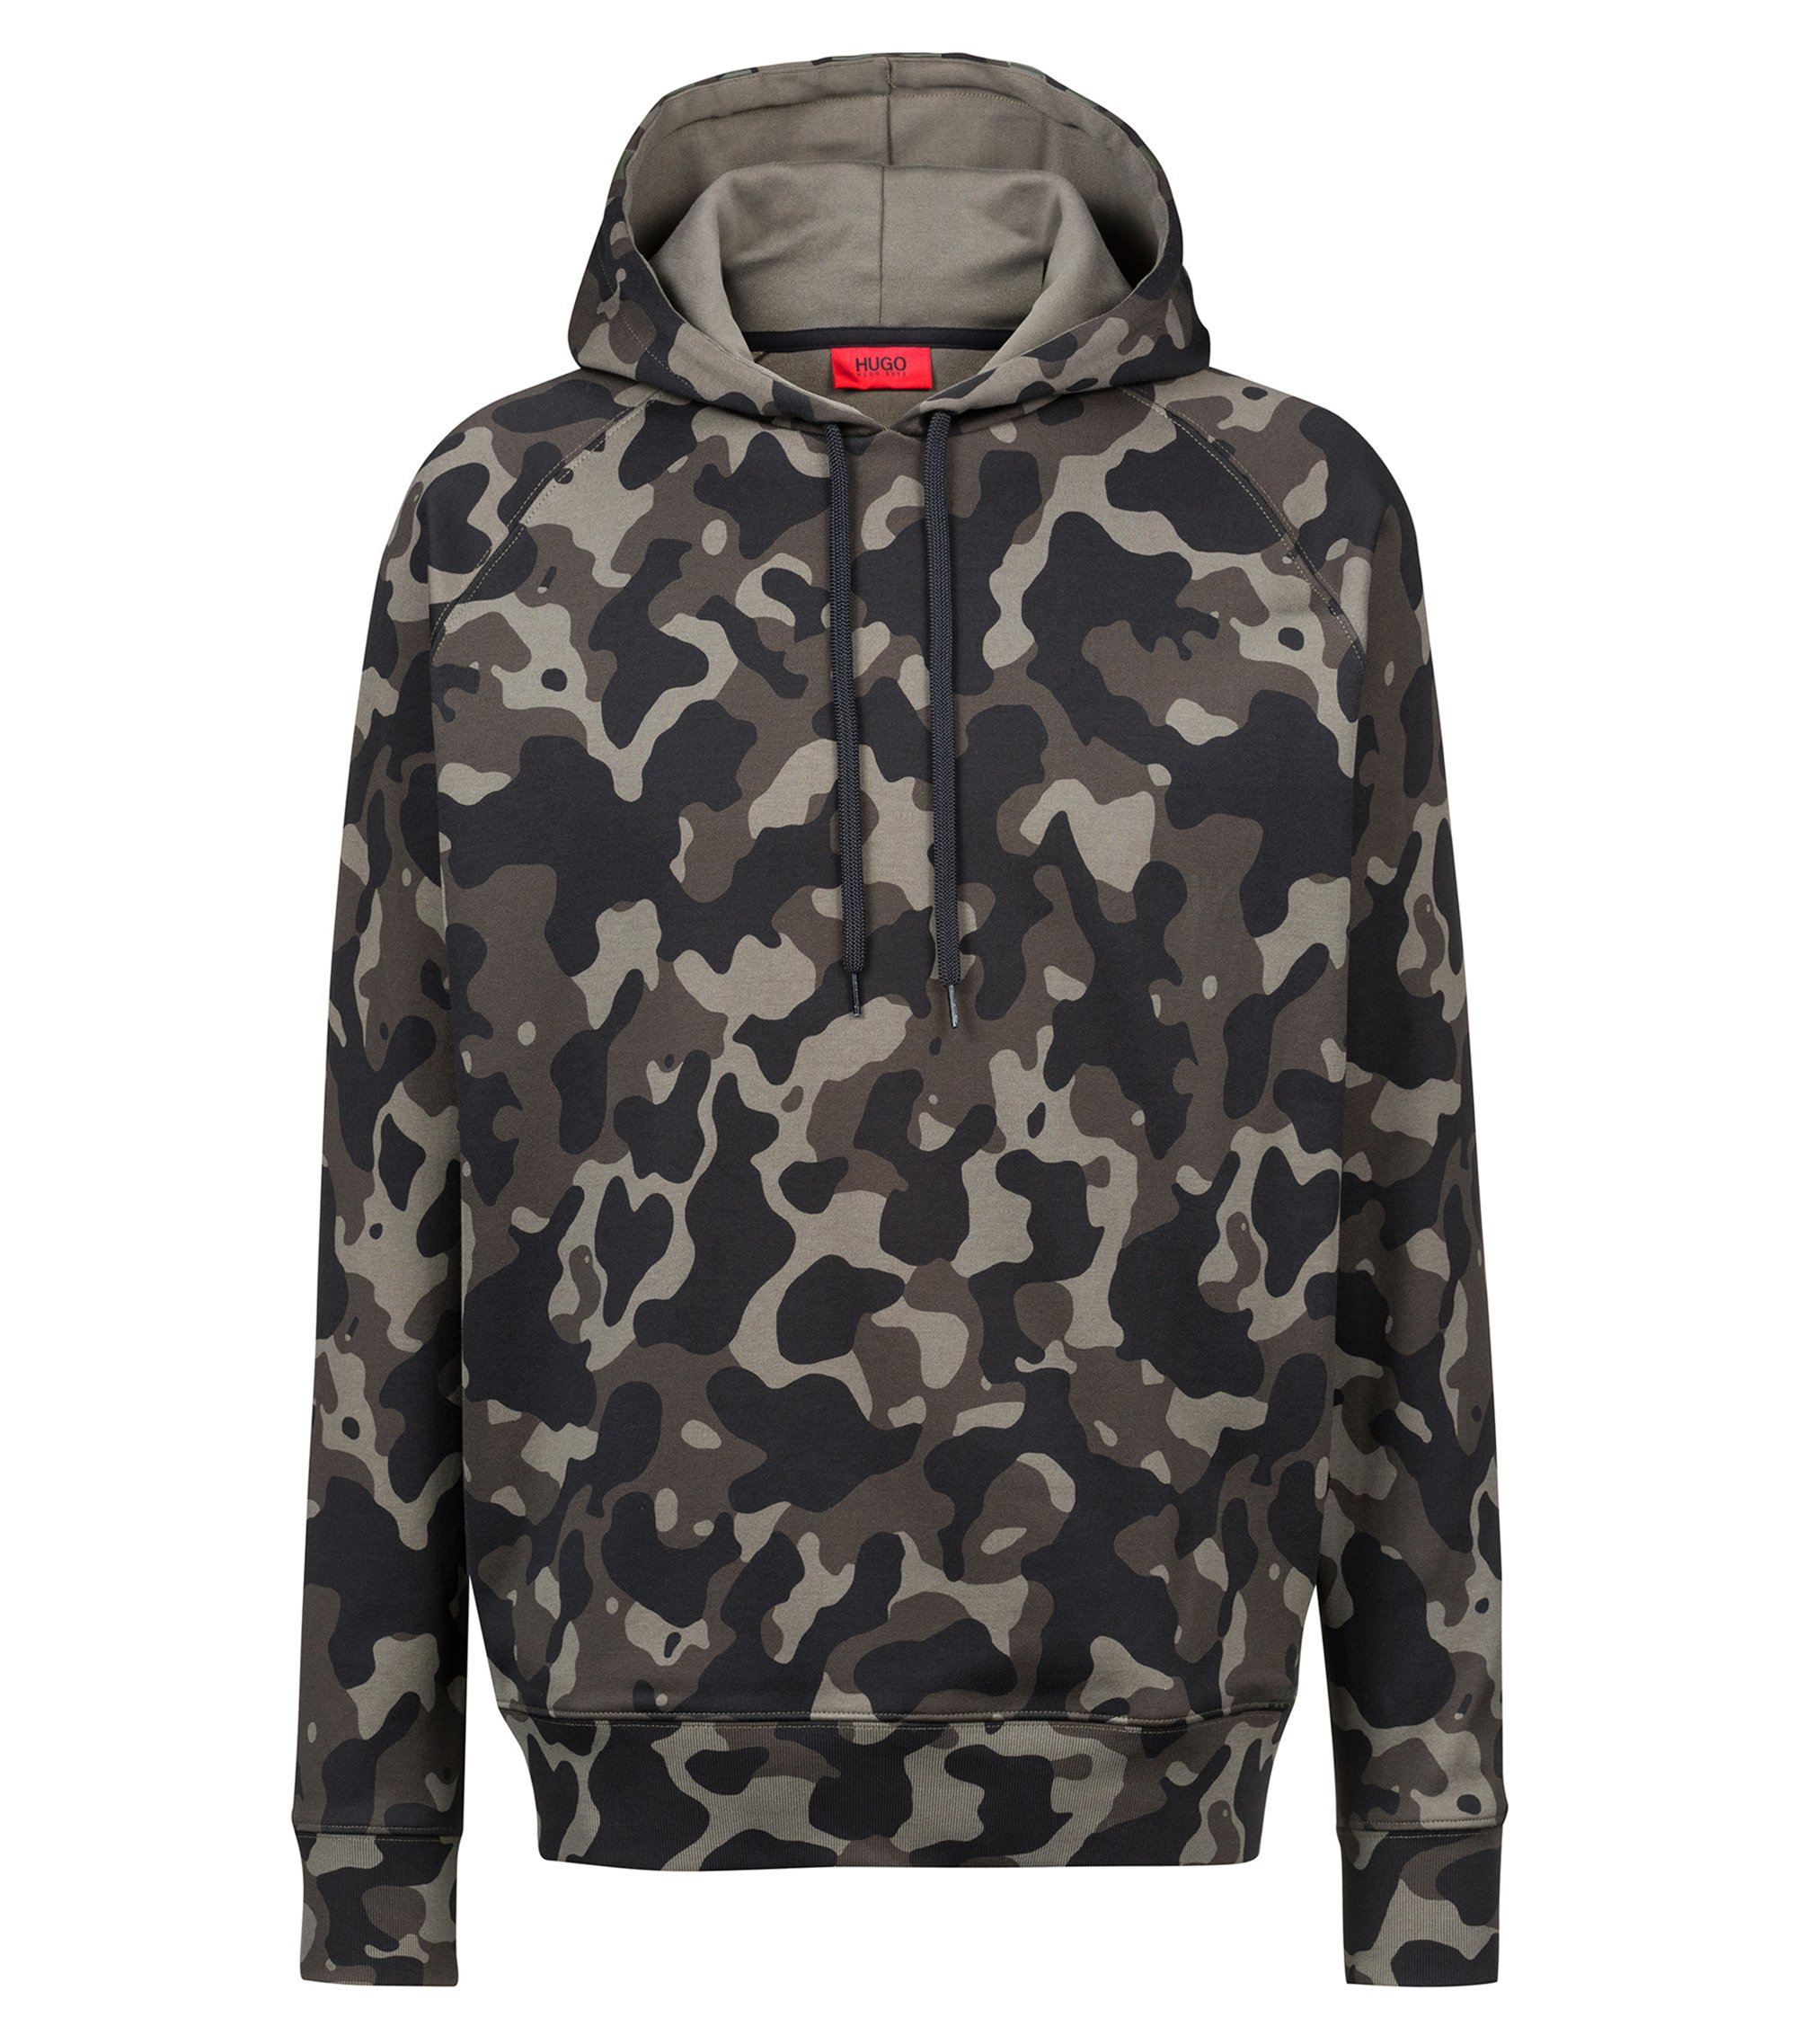 Oversized-fit hooded sweatshirt in camouflage-print cotton, Patterned